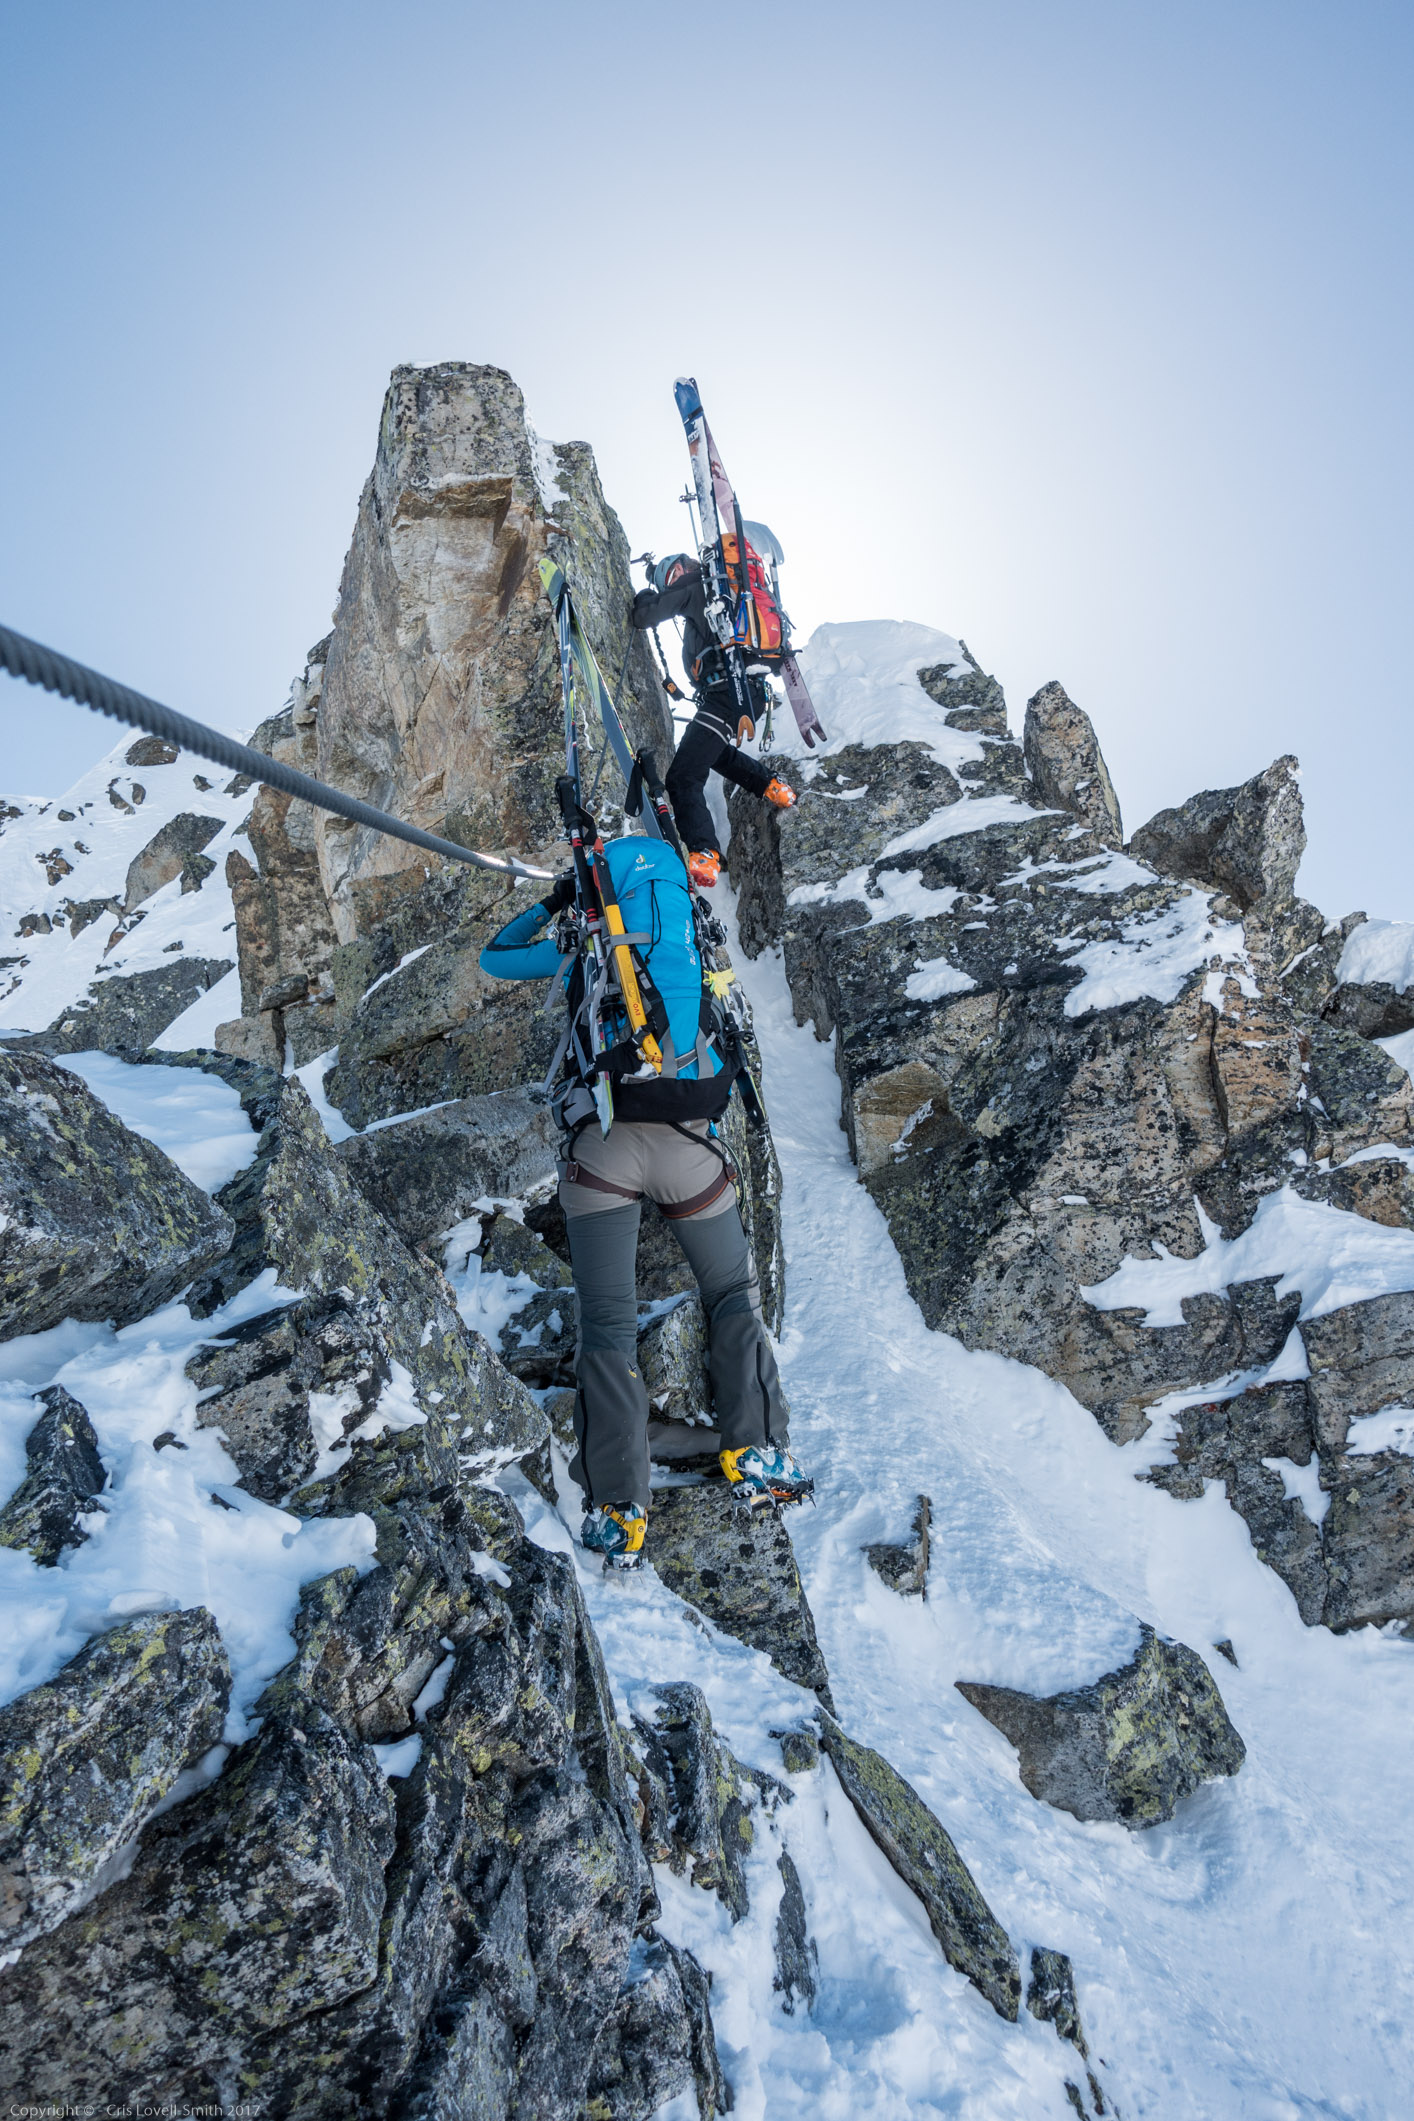 Coming up to a tricky bit (Arlberger Winterklettersteig March 2017)